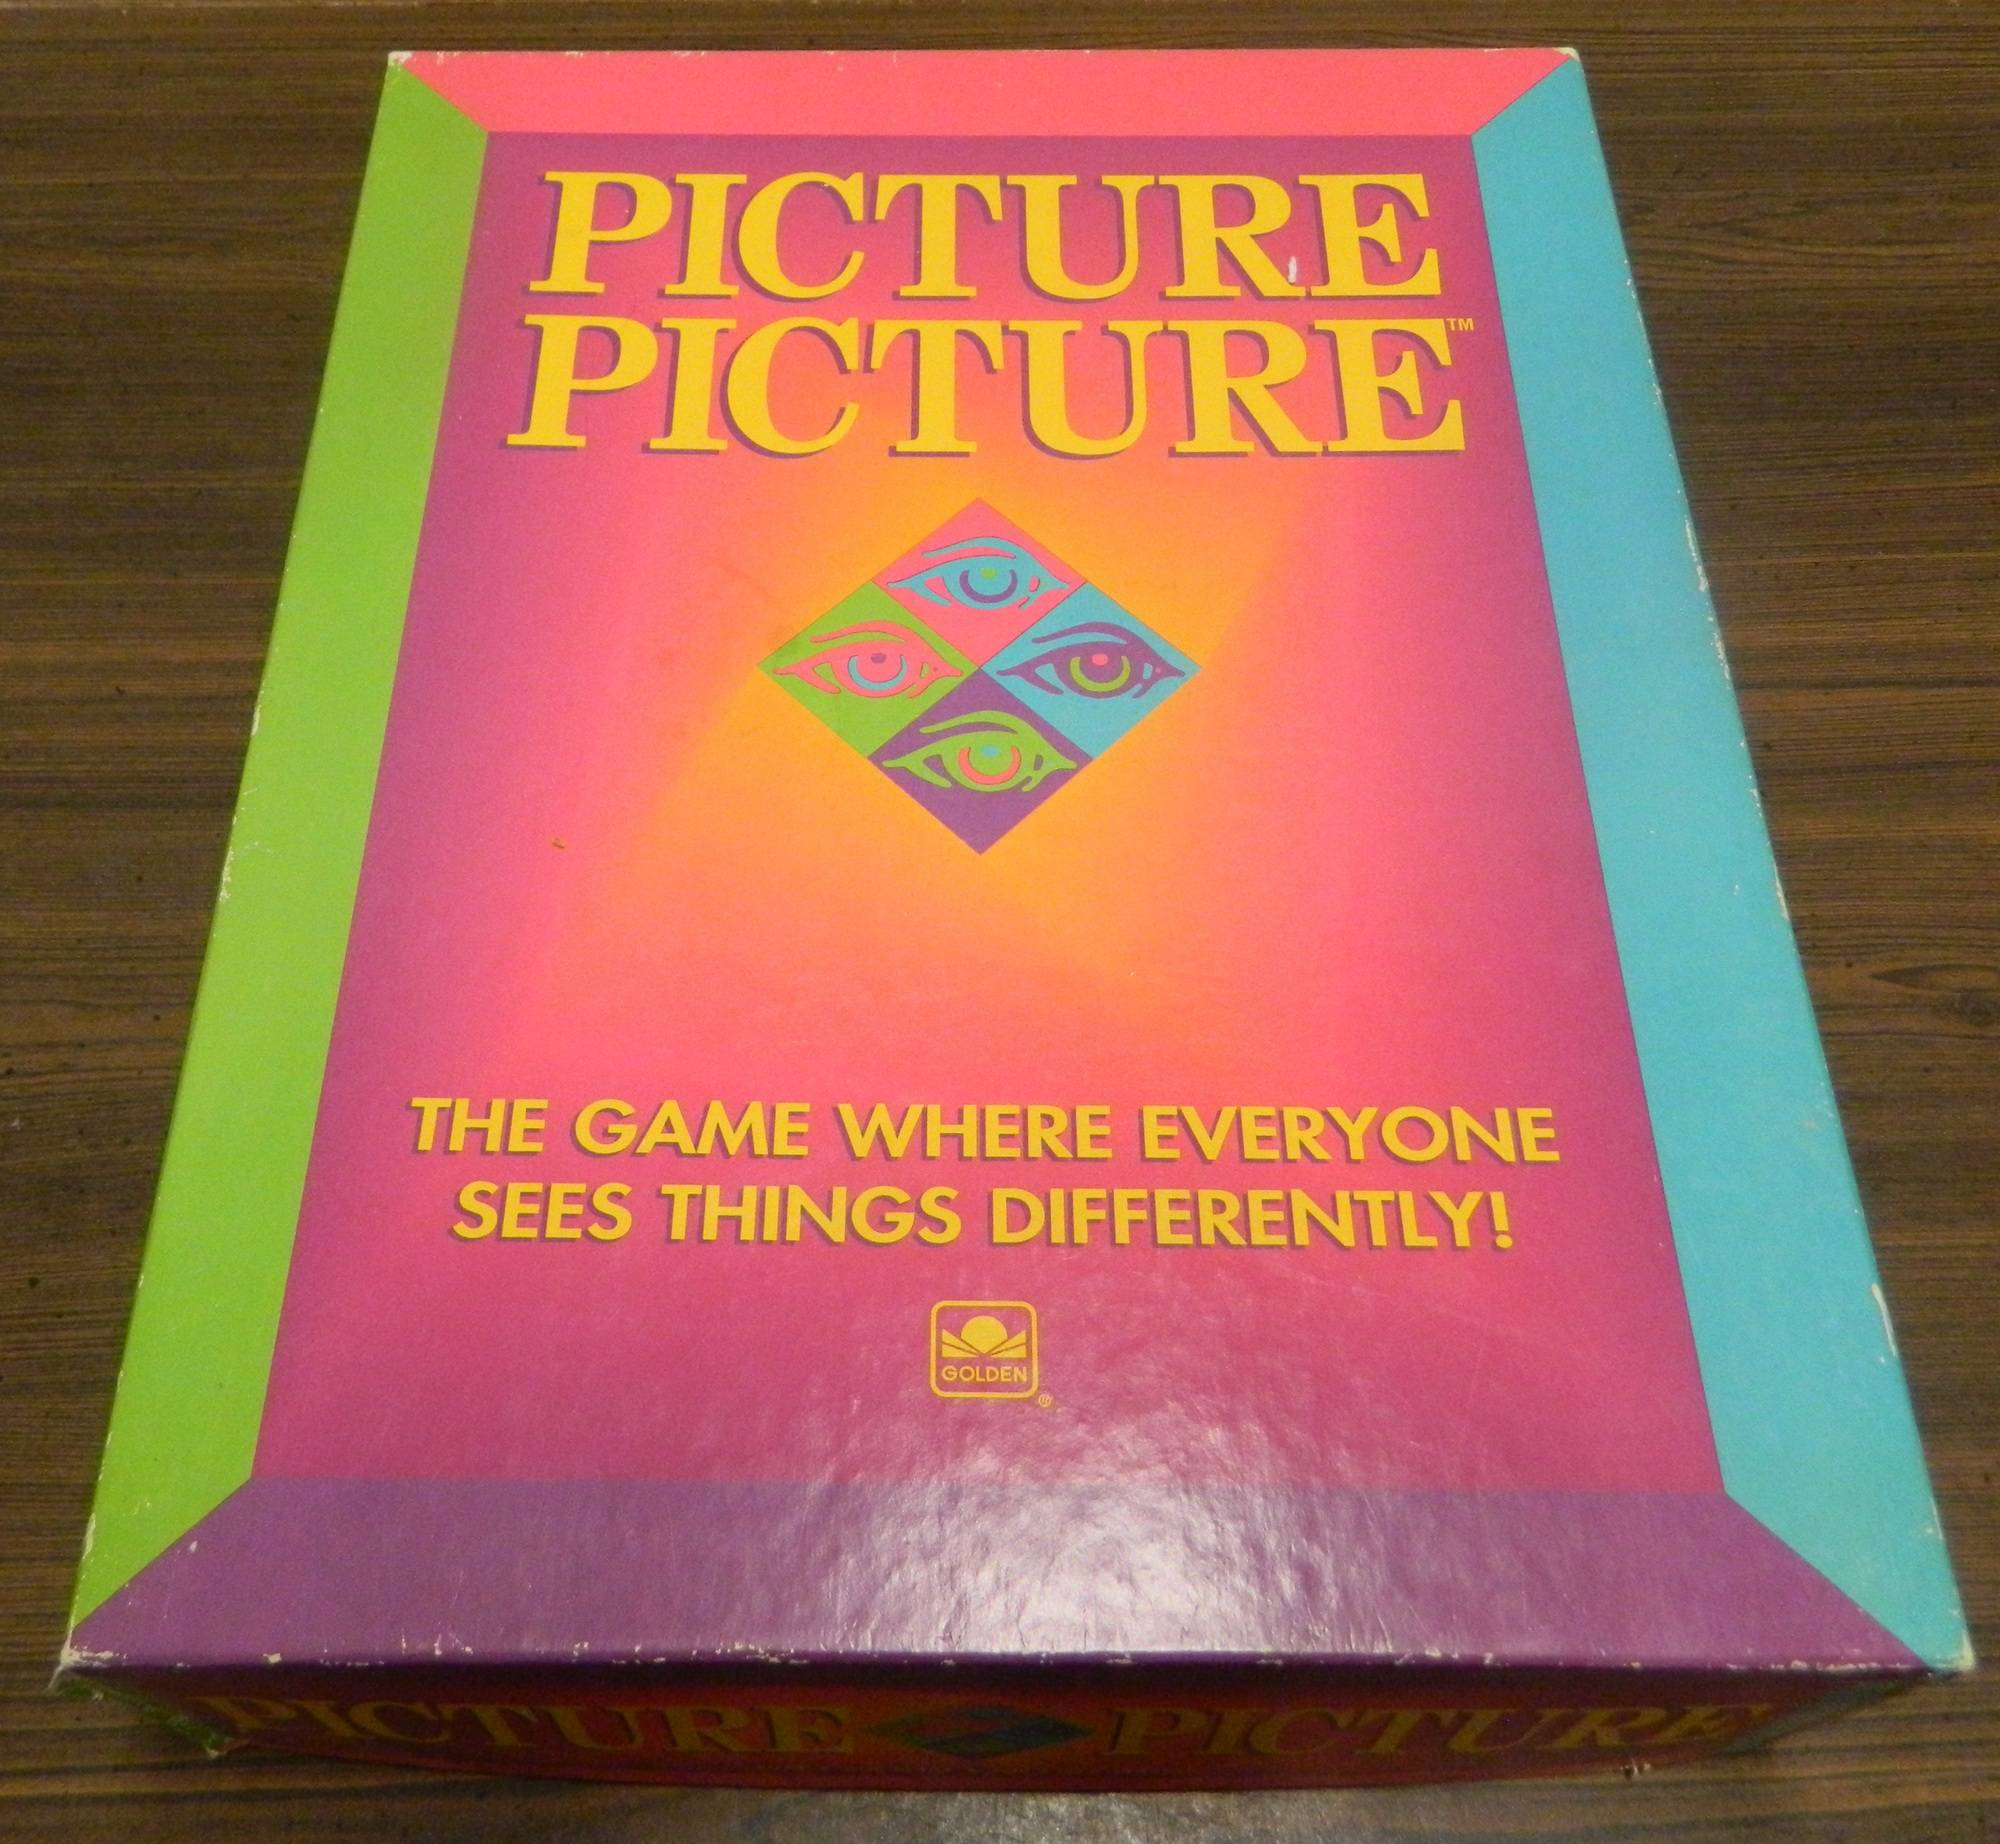 Box for Picture Picture